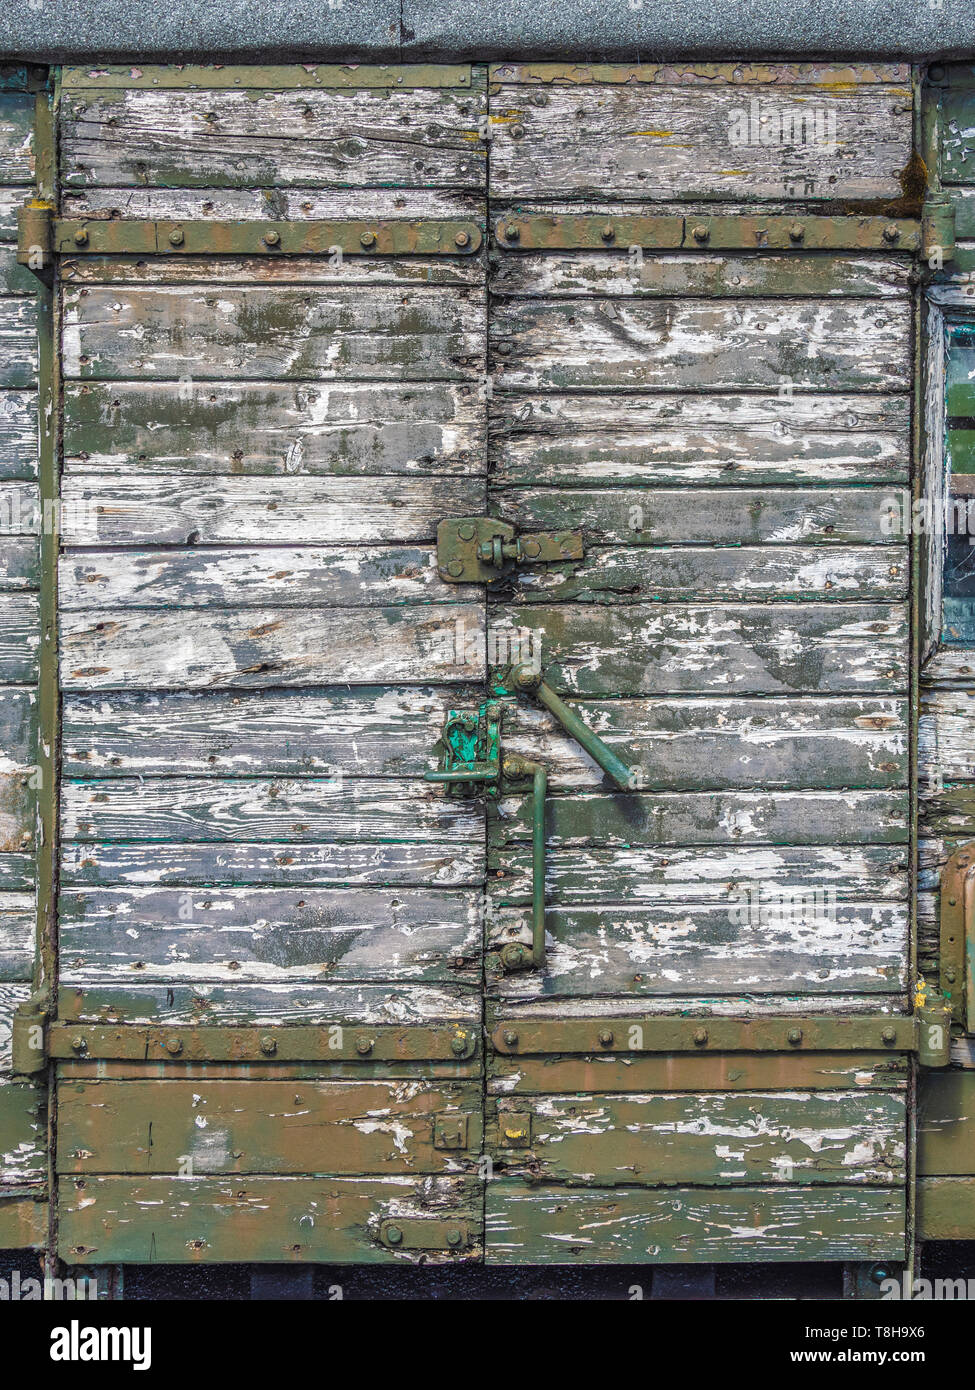 Decrepit wooden doors on carriage awaiting restoration at Bolton and Embsay steam railway. Bolton Station, Yorkshire Dales, UK. - Stock Image